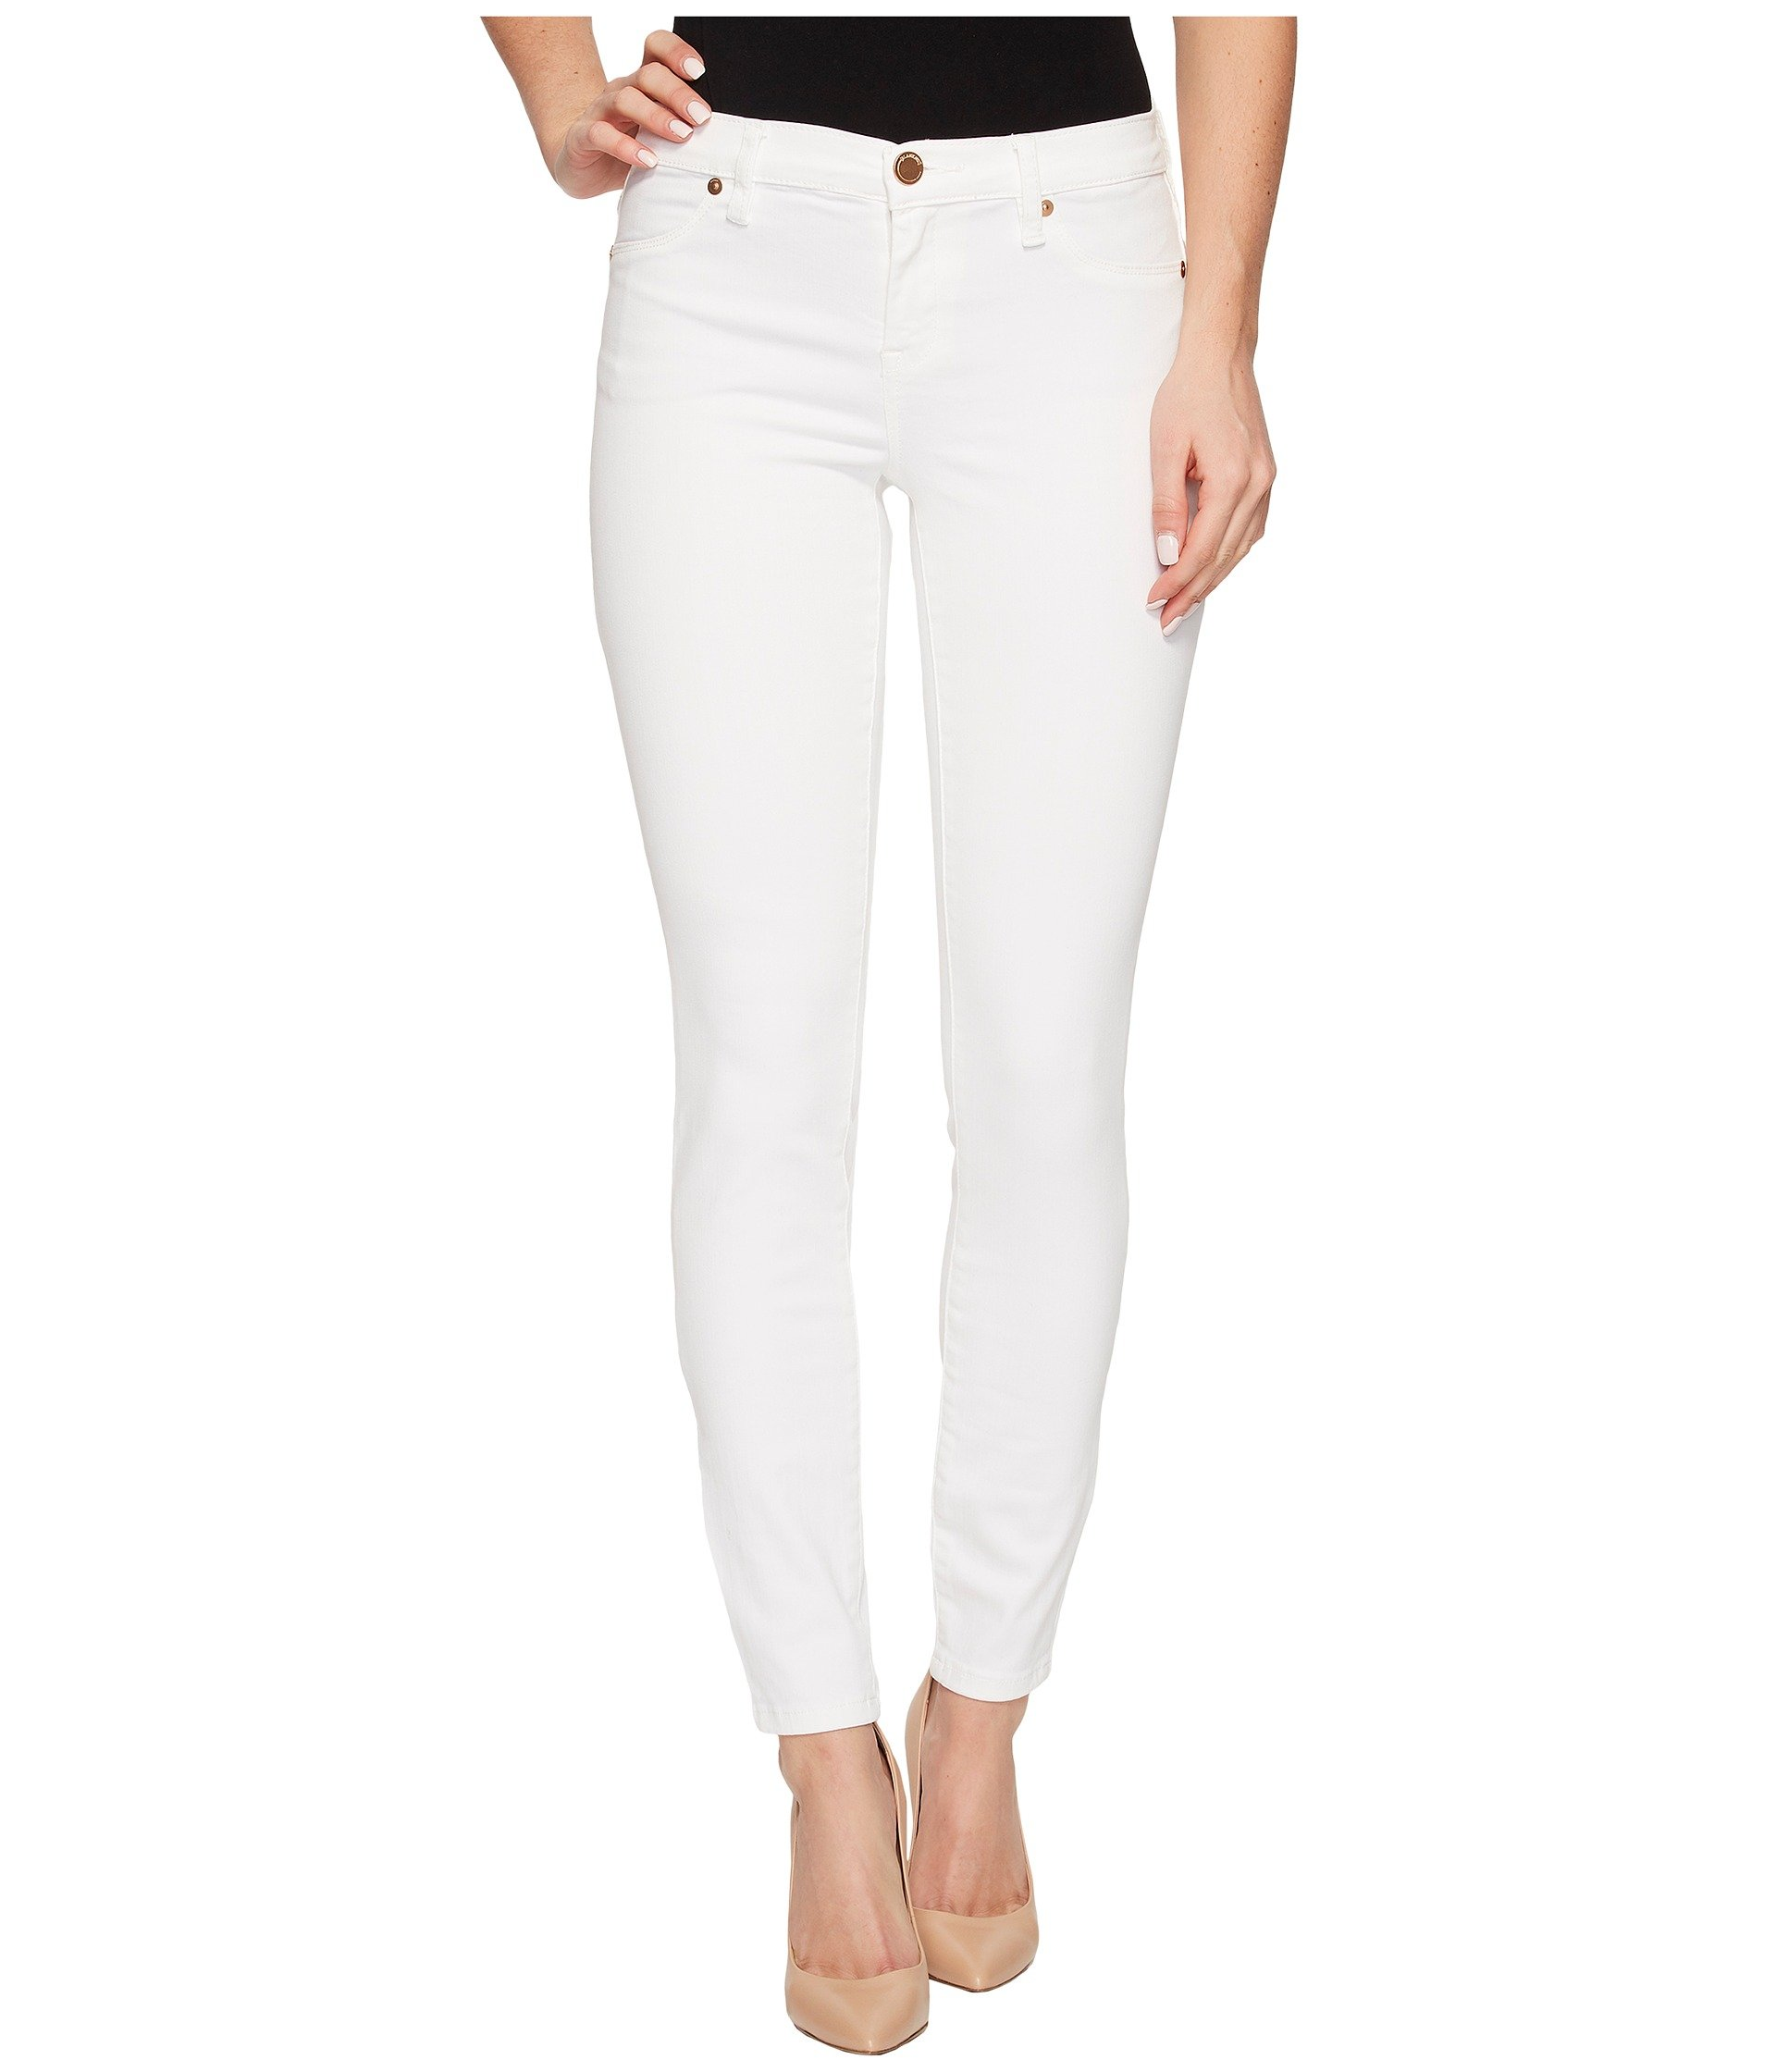 8bf8c2c51fd10 Women's Blank NYC Jeans + FREE SHIPPING | Clothing | Zappos.com